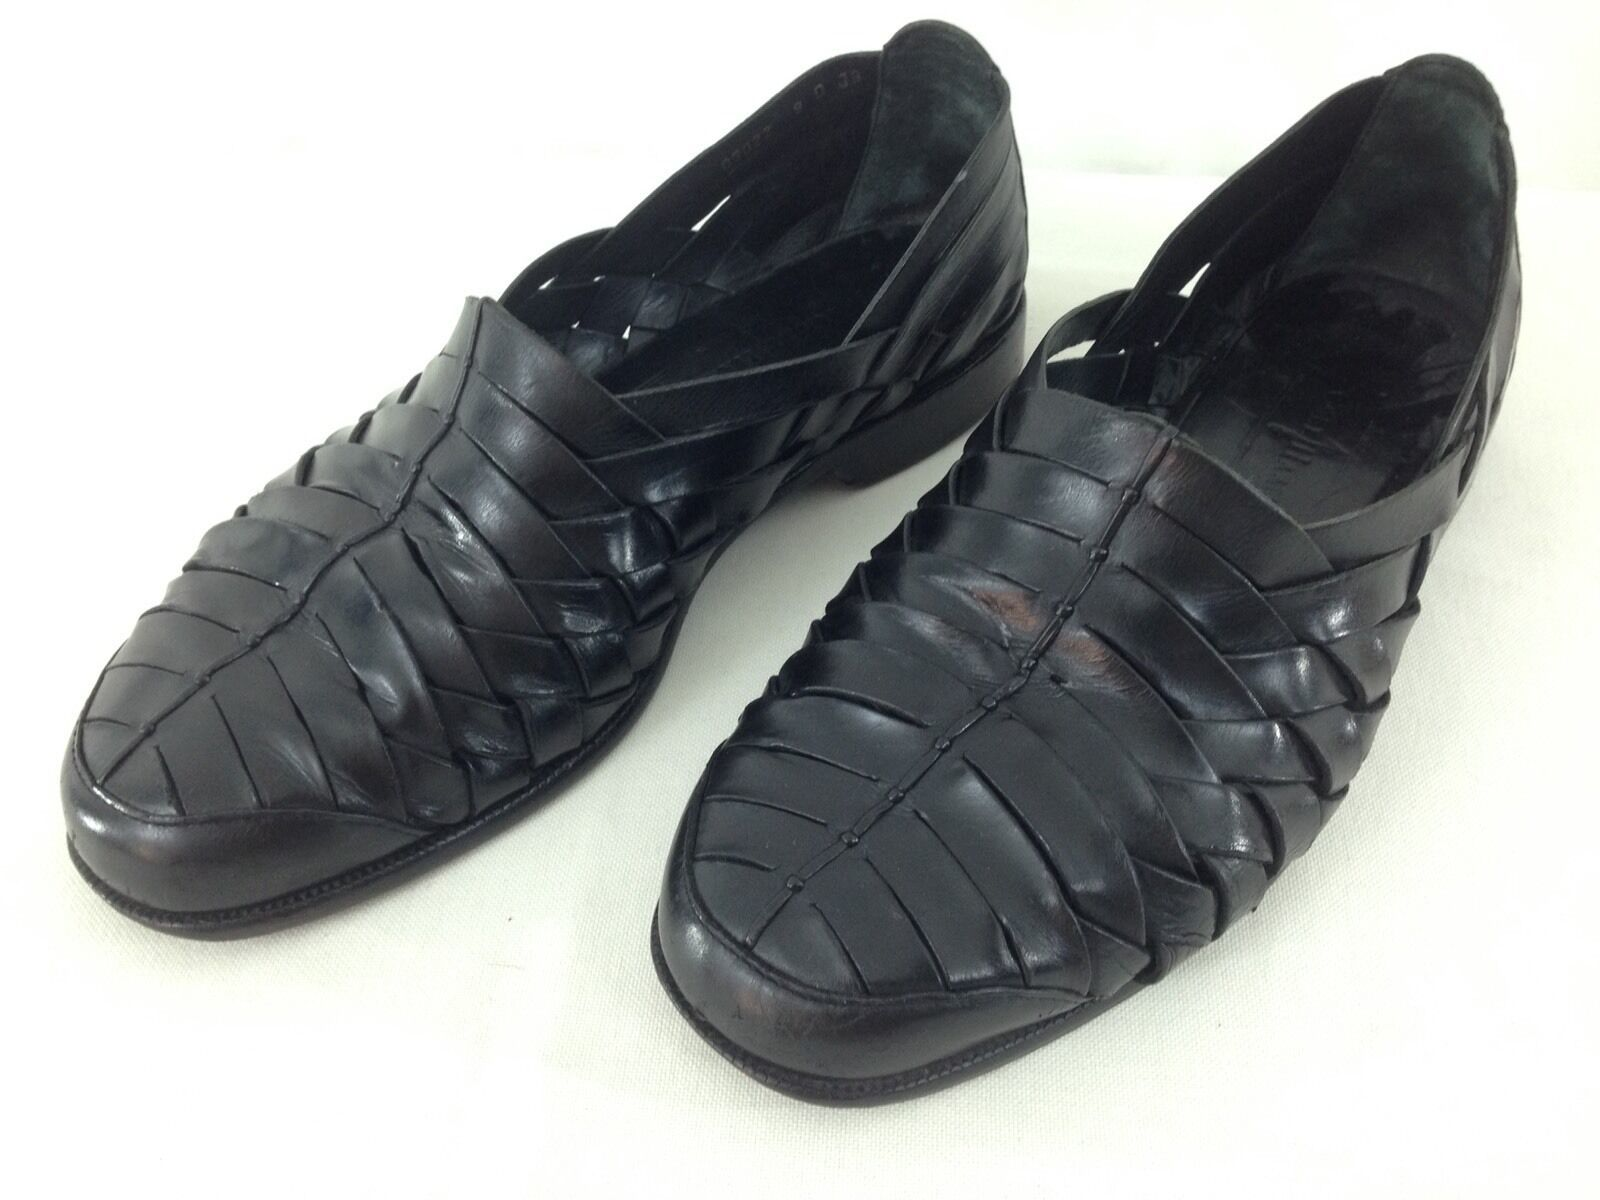 Primary image for Cole Haan 03022 Mens sz 9 D Black Leather Weave Slip On Huarache Loafer Shoes